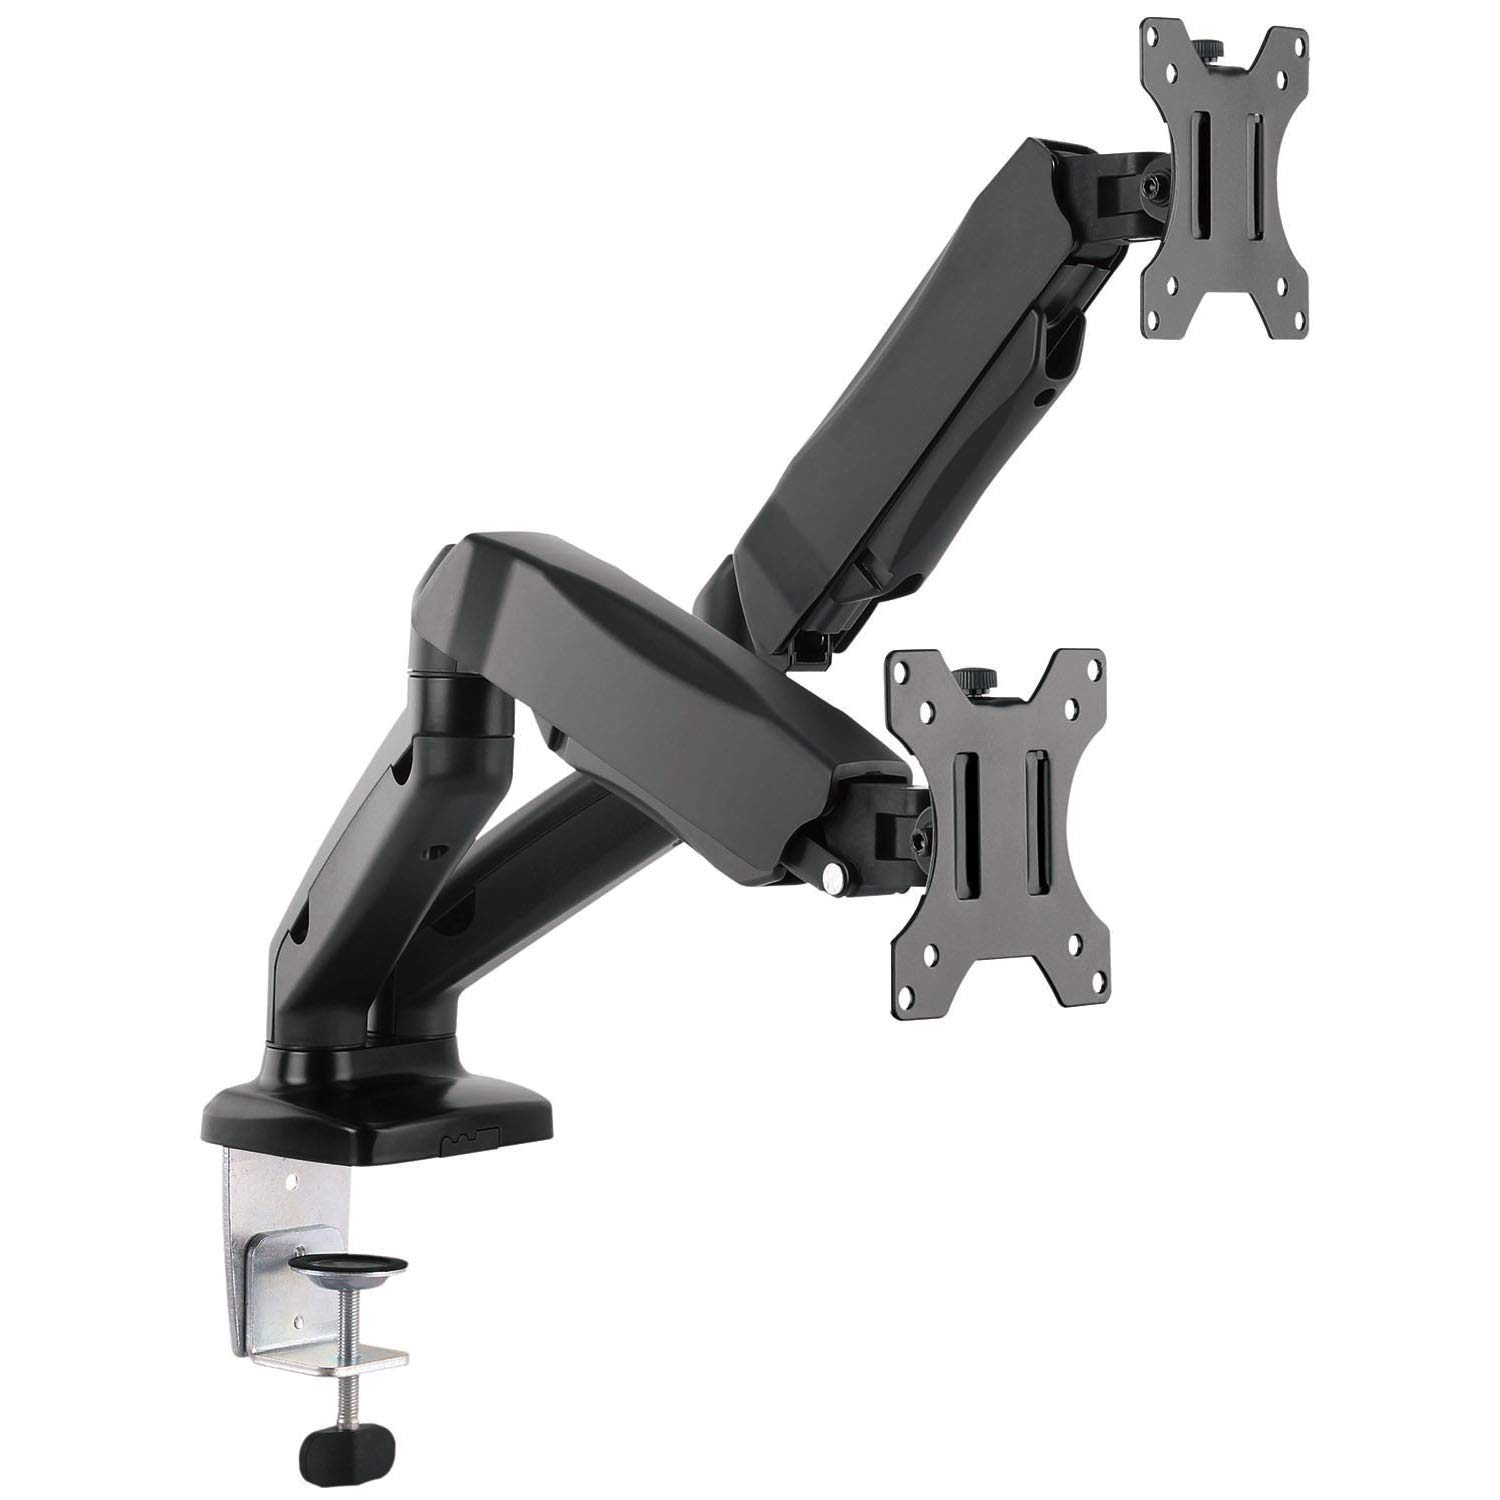 WALI Dual LCD Monitor Fully Adjustable Gas Spring Desk Mount Fit 2 Screens VESA up to 27 inch, 14.3 lbs. Weight Capacity per Arm (GSM002), Black by WALI